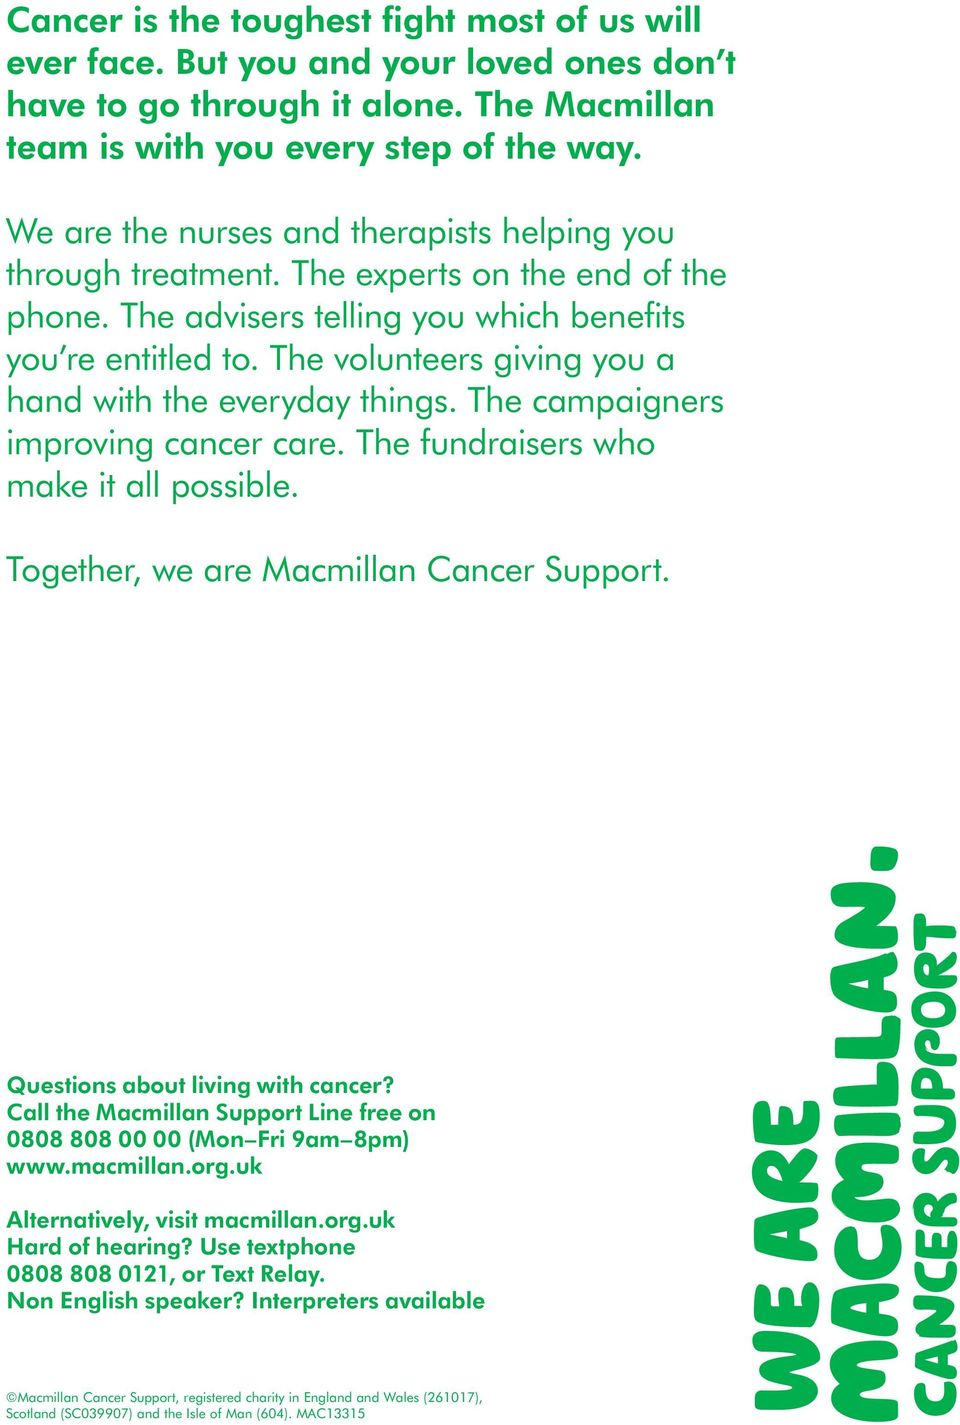 The volunteers giving you a hand with the everyday things. The campaigners improving cancer care. The fundraisers who make it all possible. Together, we are Macmillan Cancer Support.